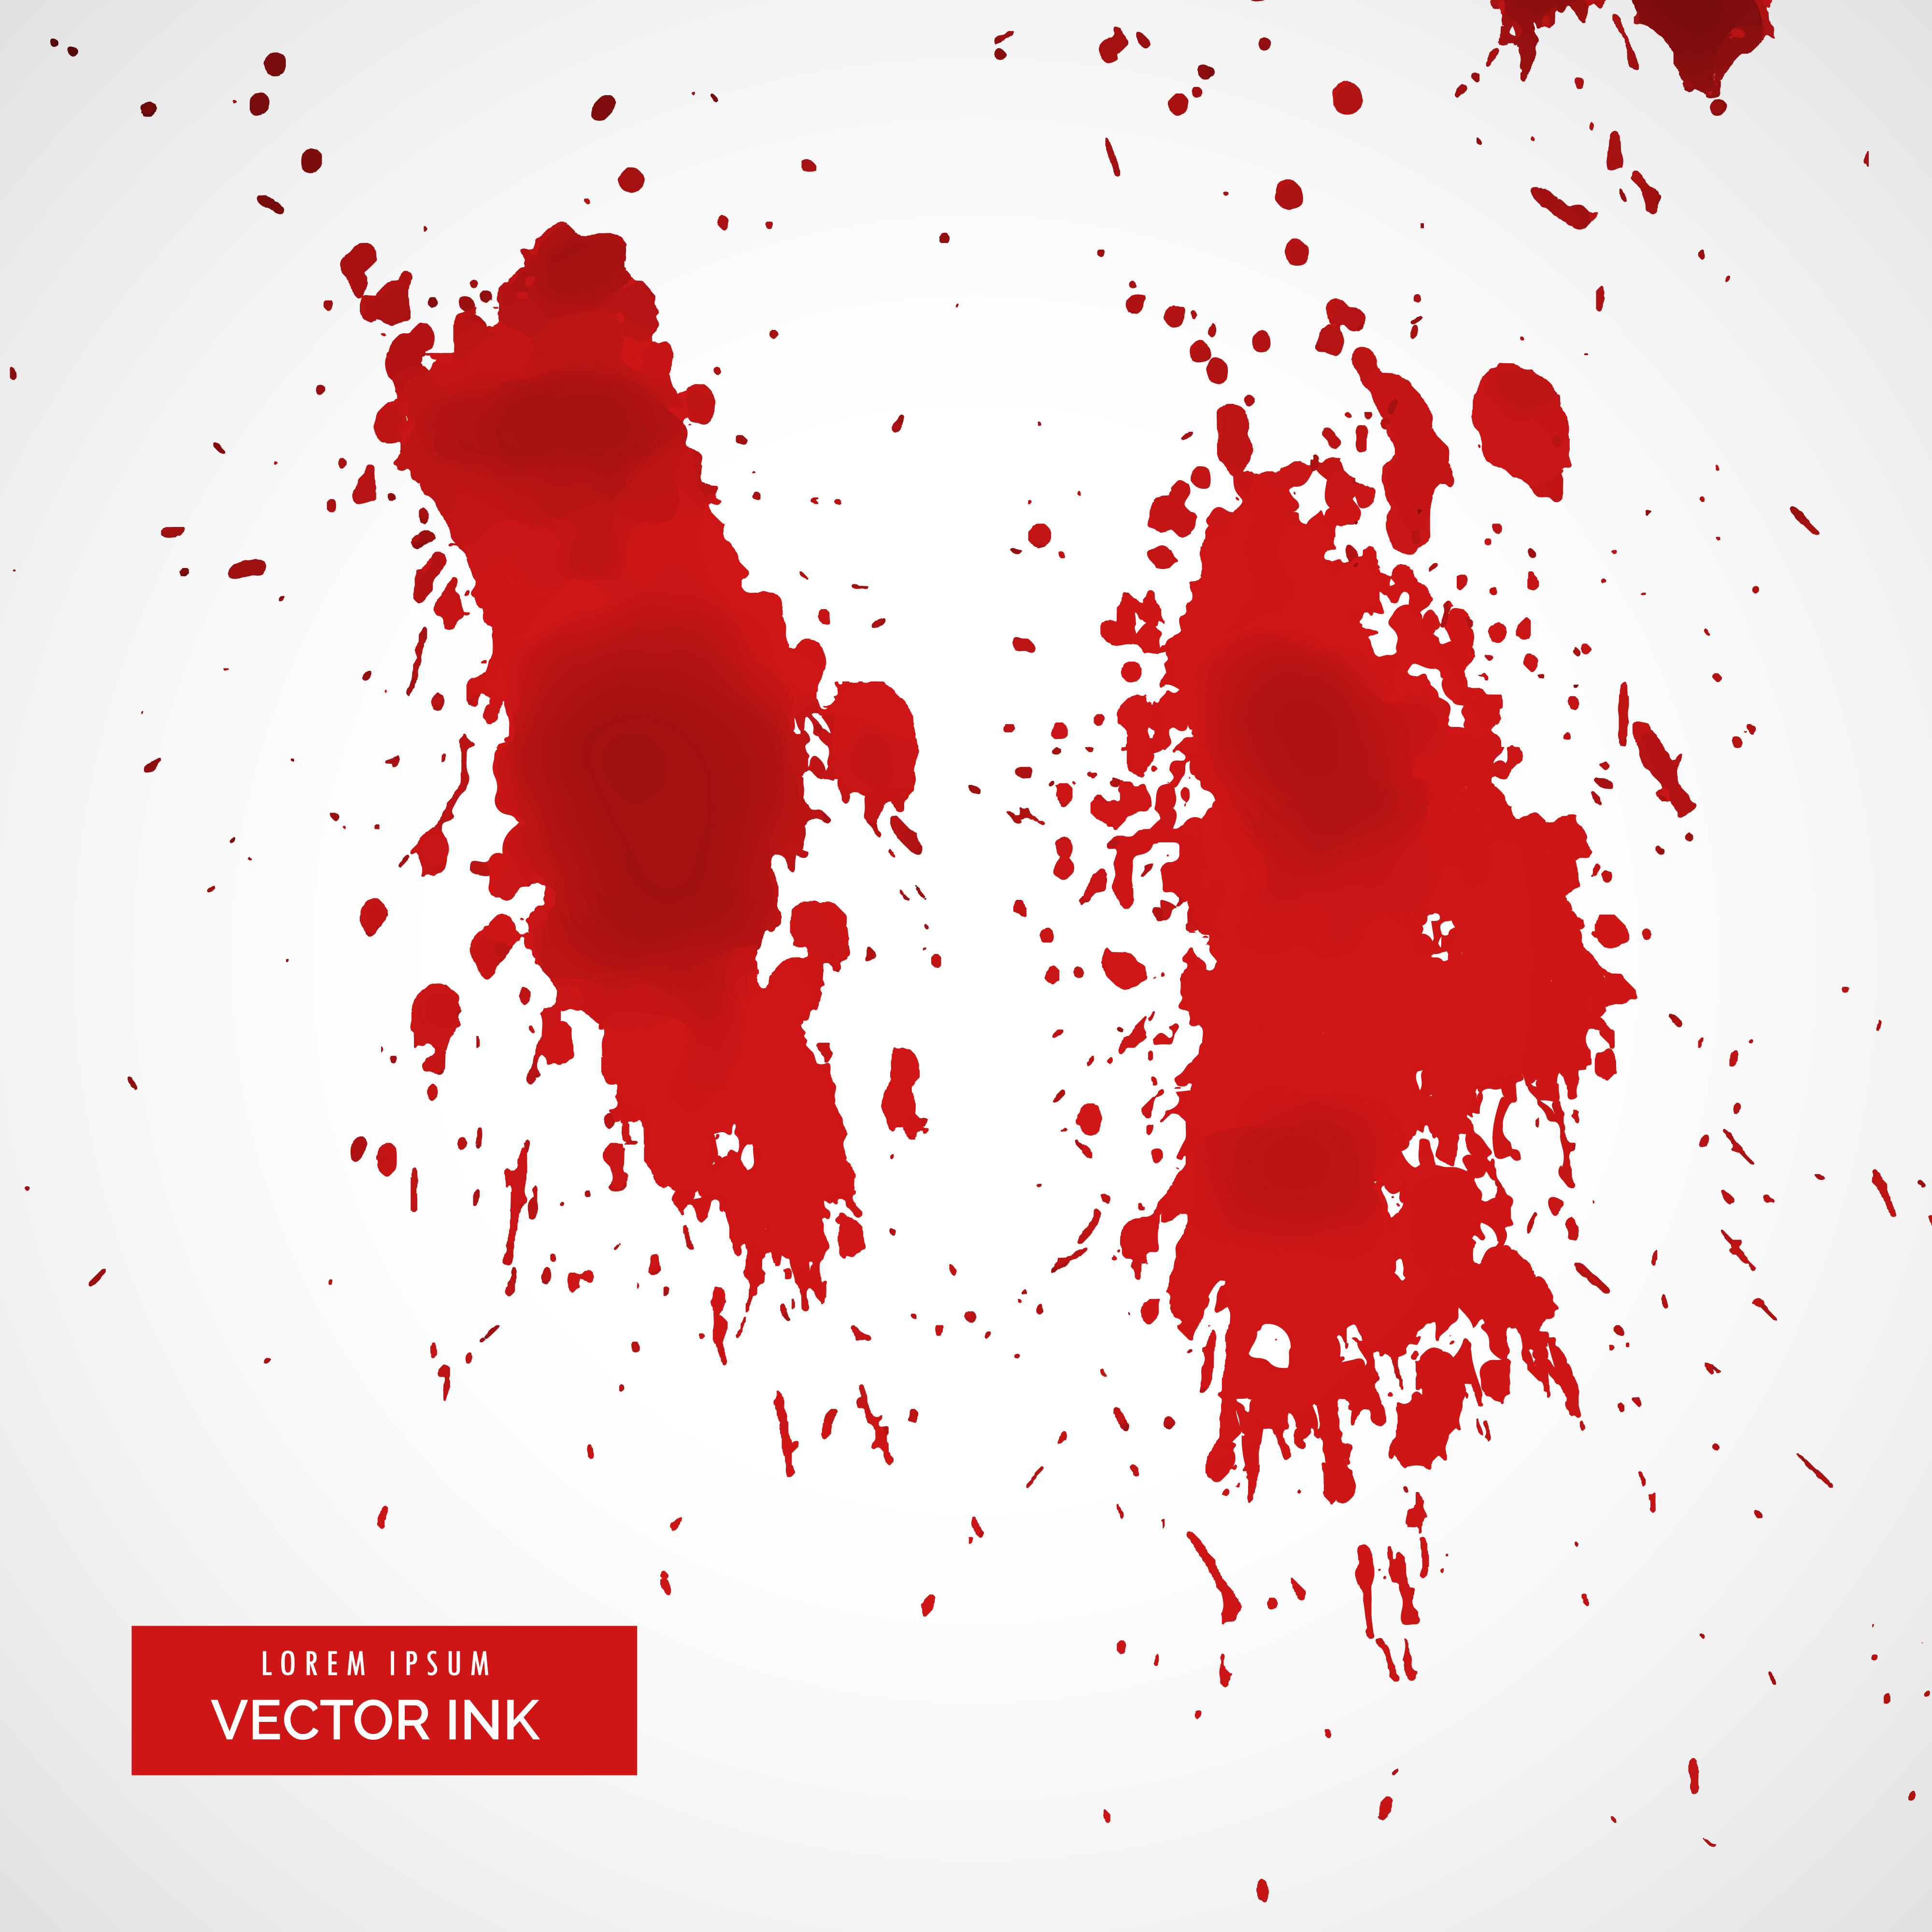 red blood splatter on white background download free